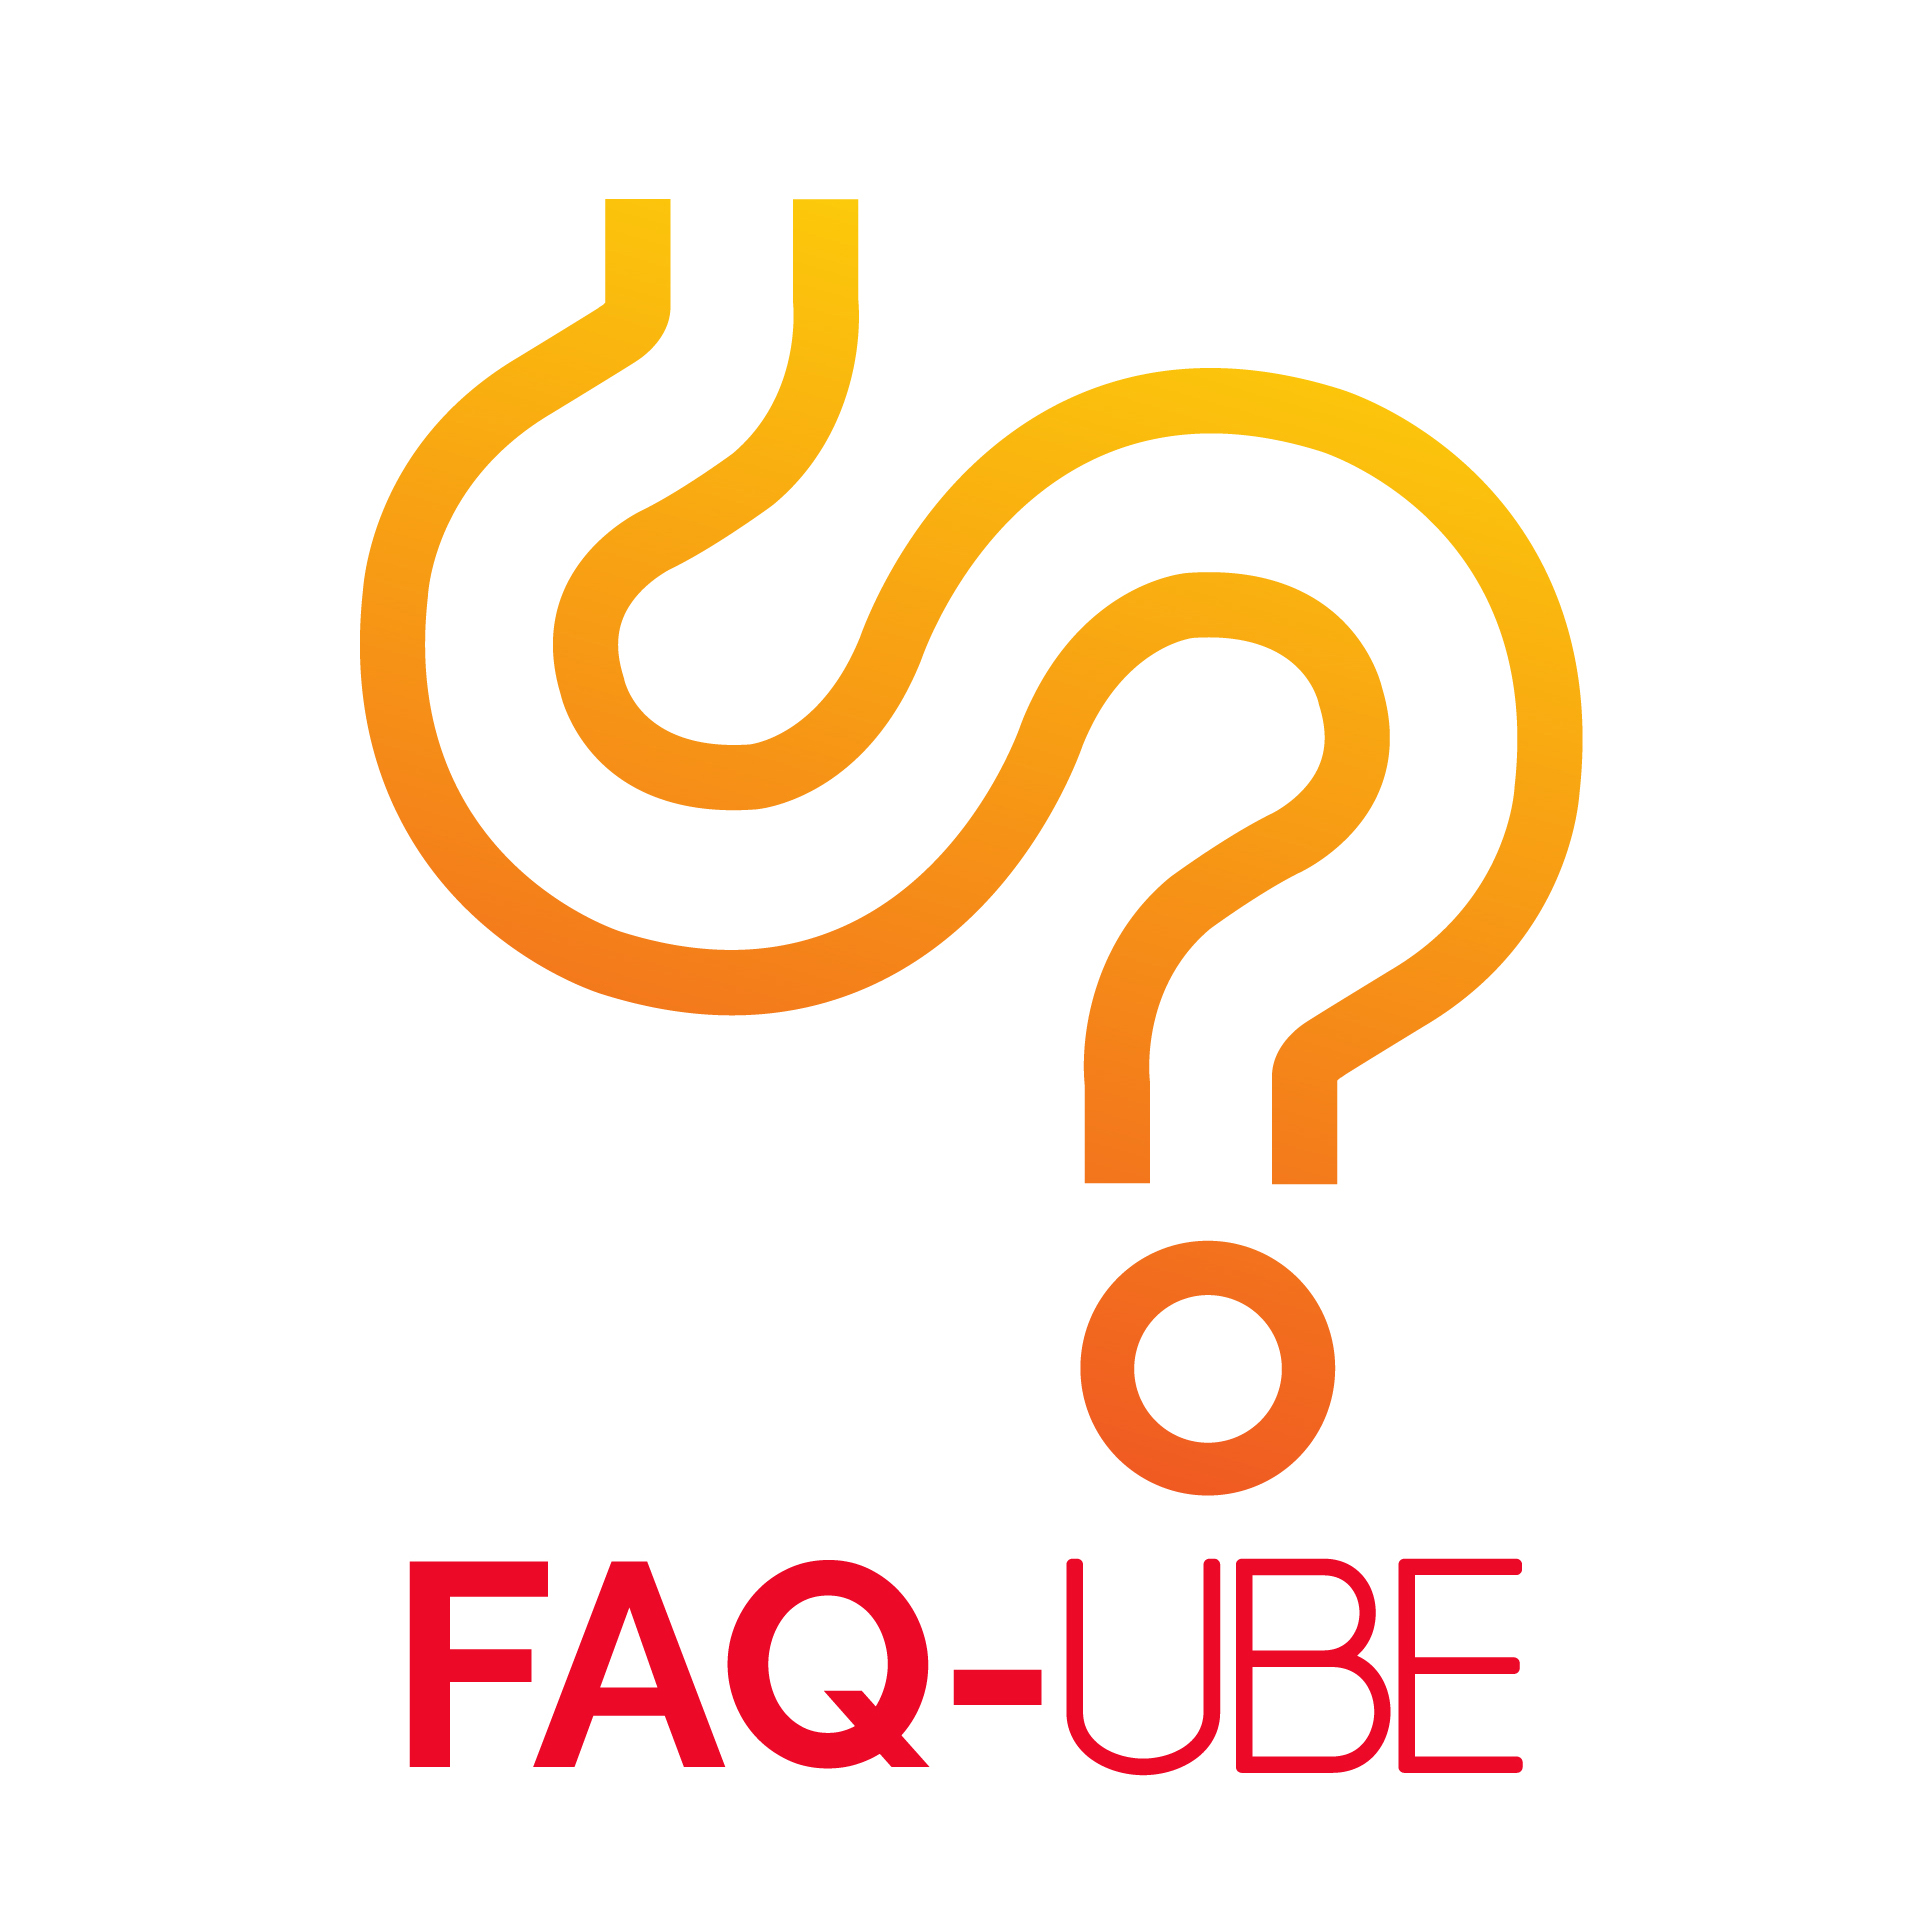 FAQ-UBE rouge